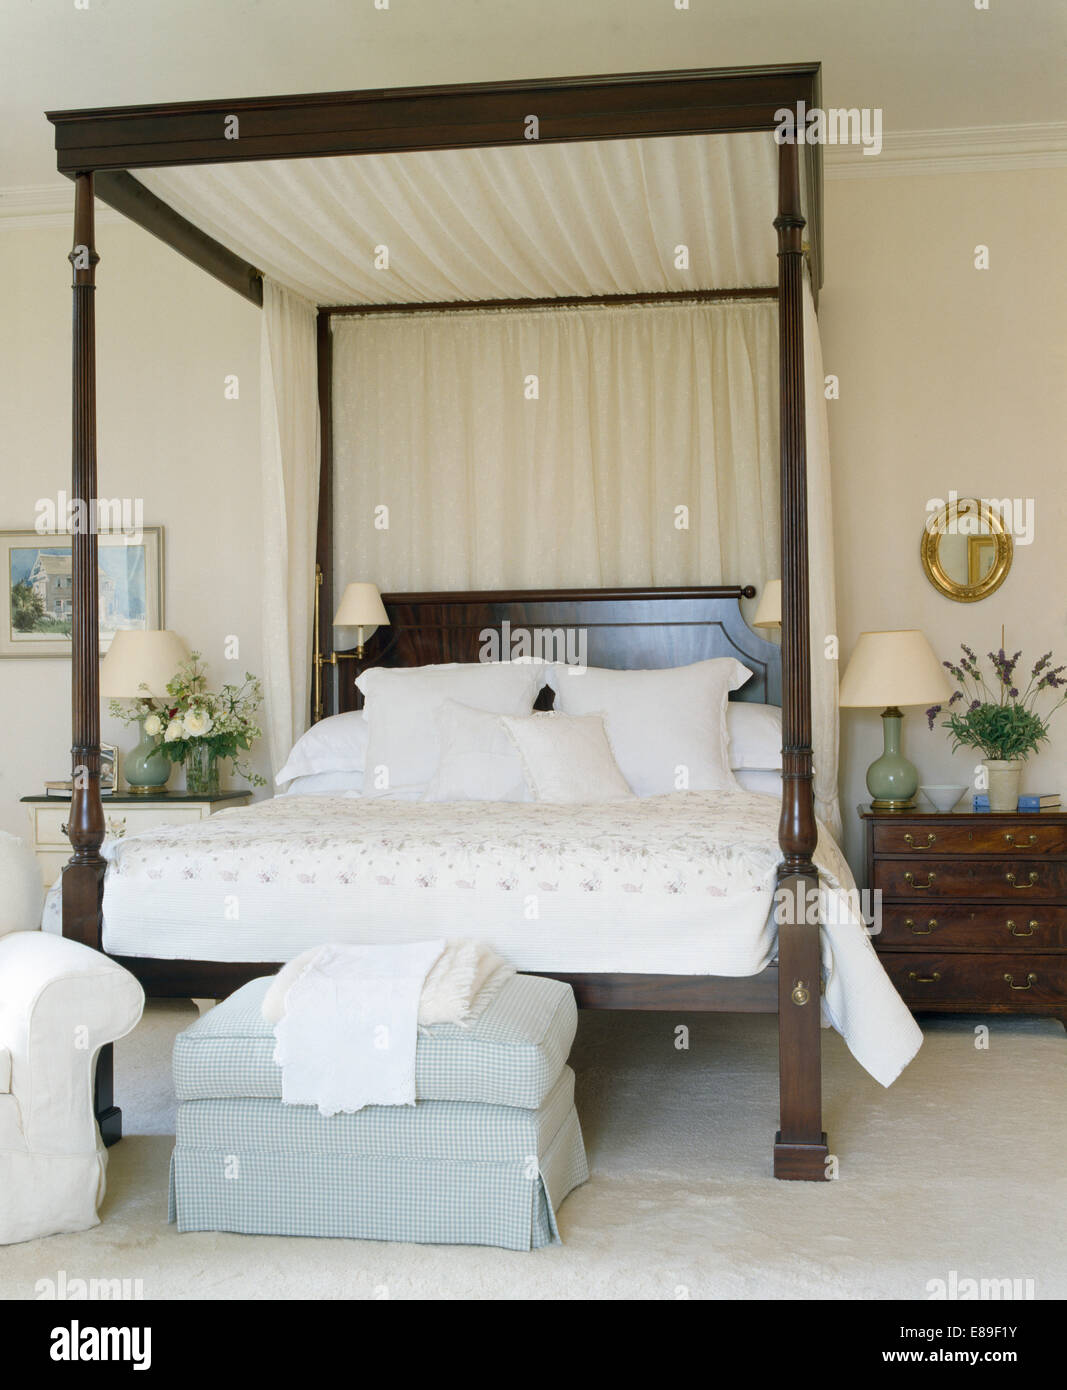 Superb White Wooden Four Poster Bed Part - 11: Cream Drapes On Dark Wood Four Poster Bed With White Linen In Bedroom With  Pale Blue Ottoman